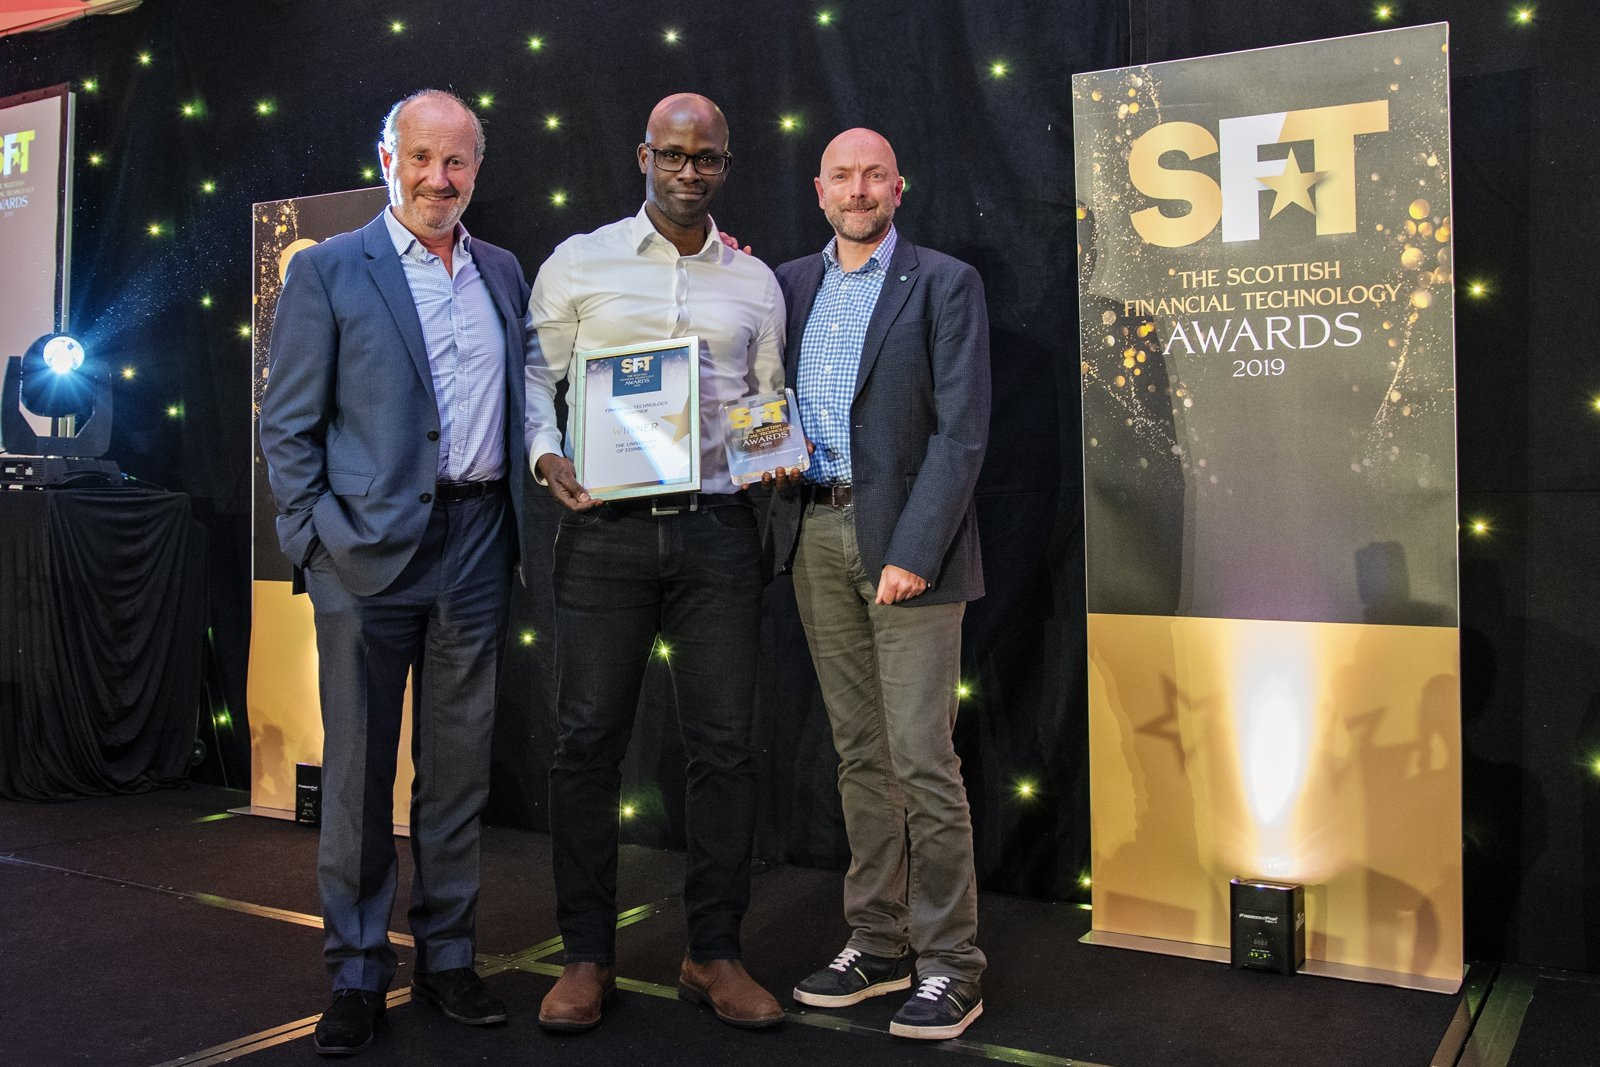 Gbenga Ibikunle collecting award at the Scottish Financial Technology Awards